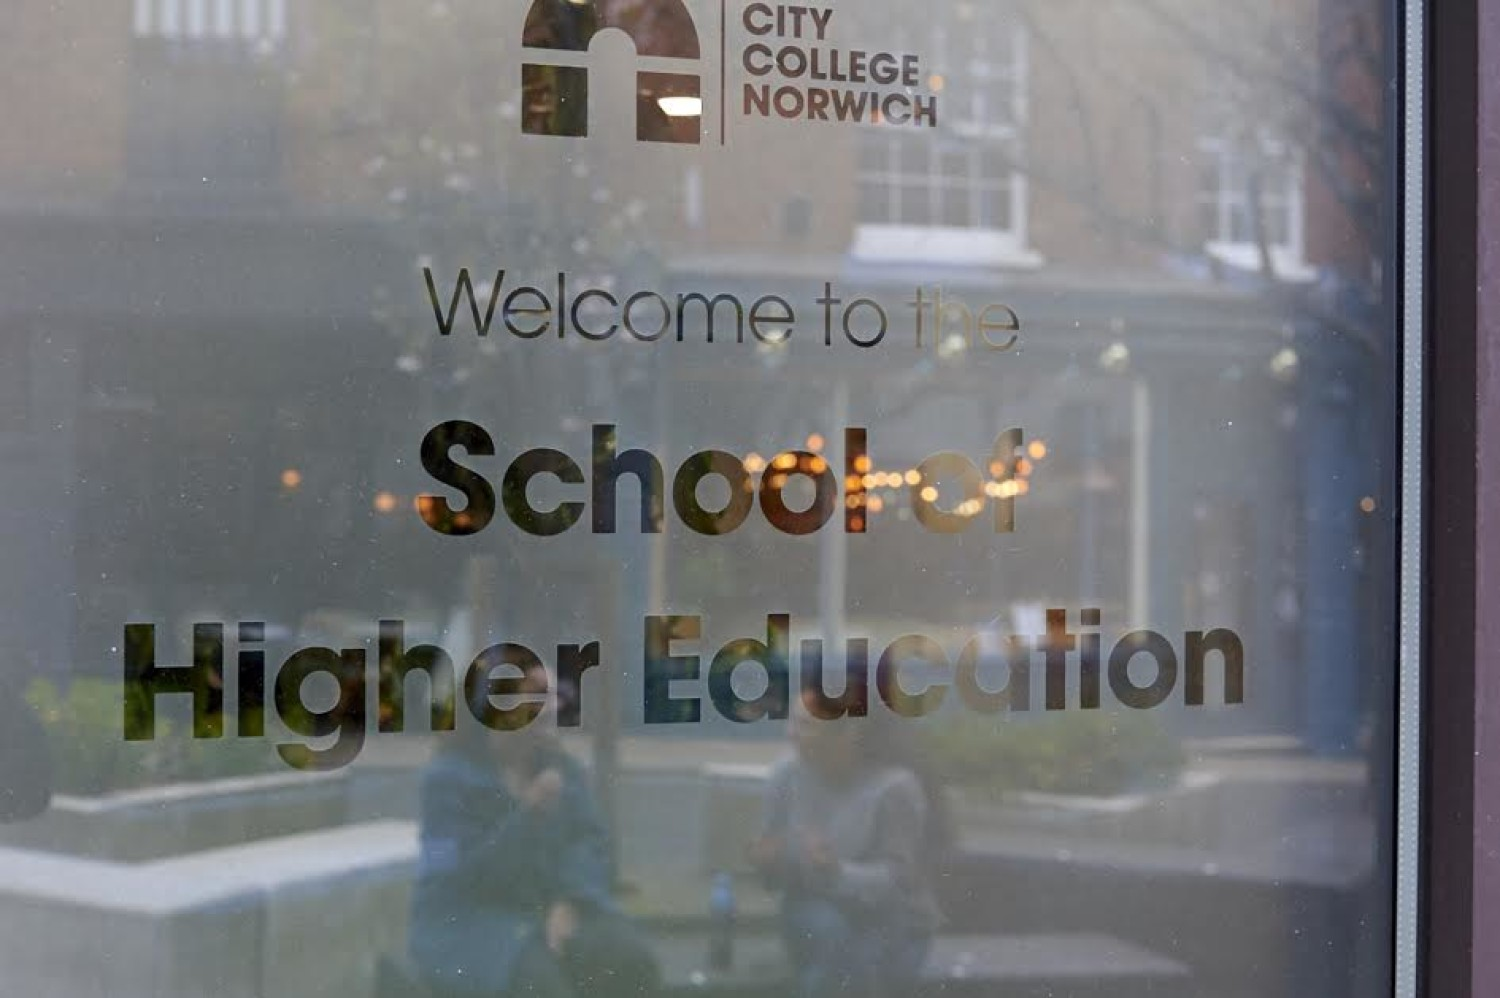 City College Norwich School of Higher Education